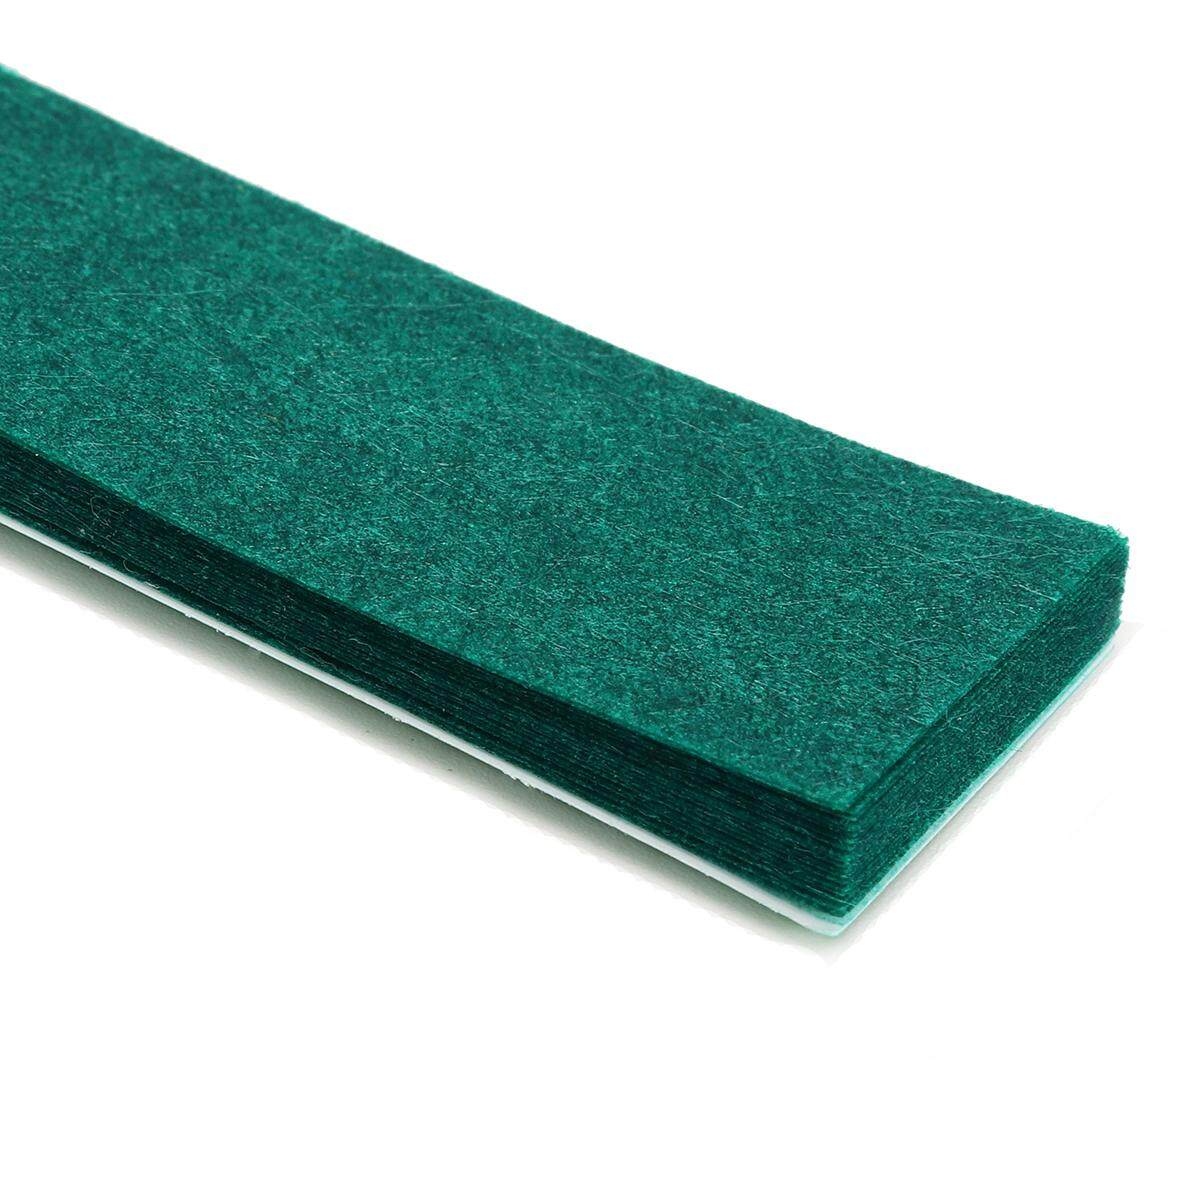 ... 200 Sheet/Box Dental Articulating Paper Thick Green Strips Oral Care Material Dentist Lab Products